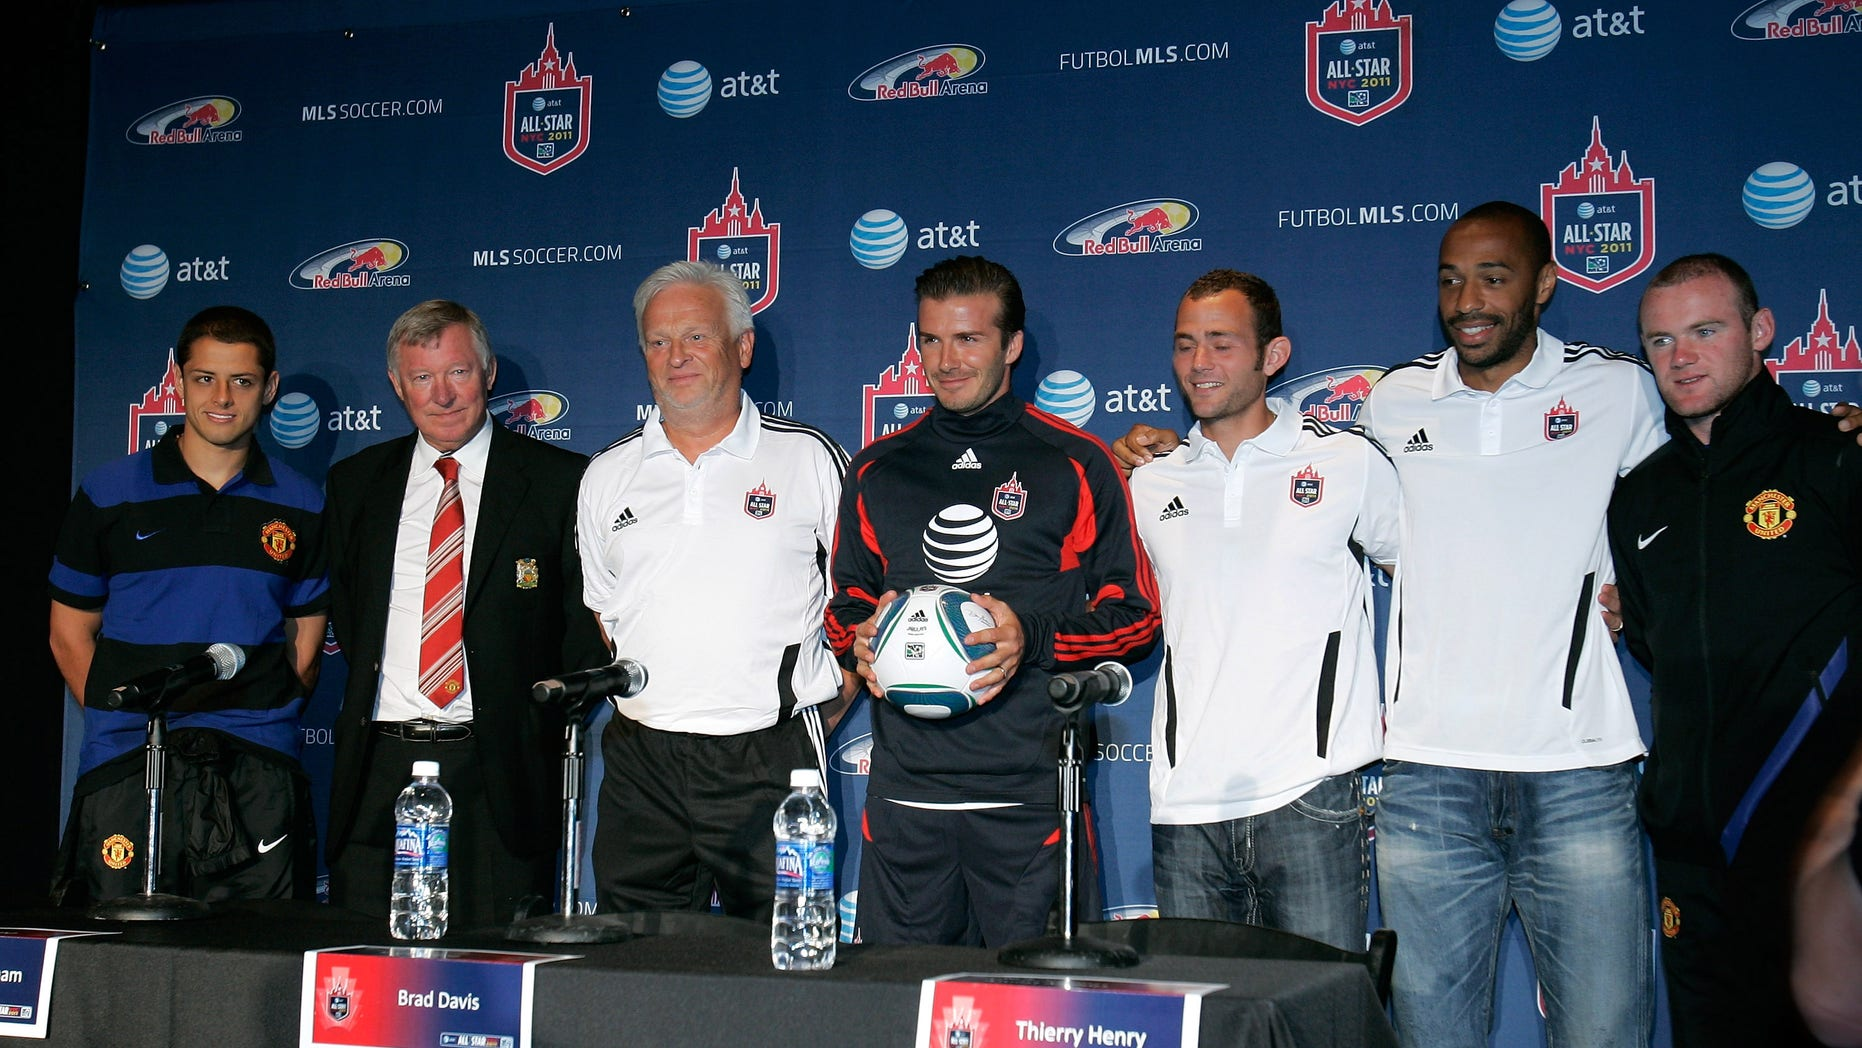 """July 25: Javier """"Chicarito"""" Hernandez of Manchester United, Manchester United Head Coach Sir Alex Ferguson, MLS All-Stars Head Coach Hans Backe, MLS All-Star David Beckham, MLS All-Star Brad Davis, MLS All-Star Thierry Henry and Wayne Rooney of Manchester United."""